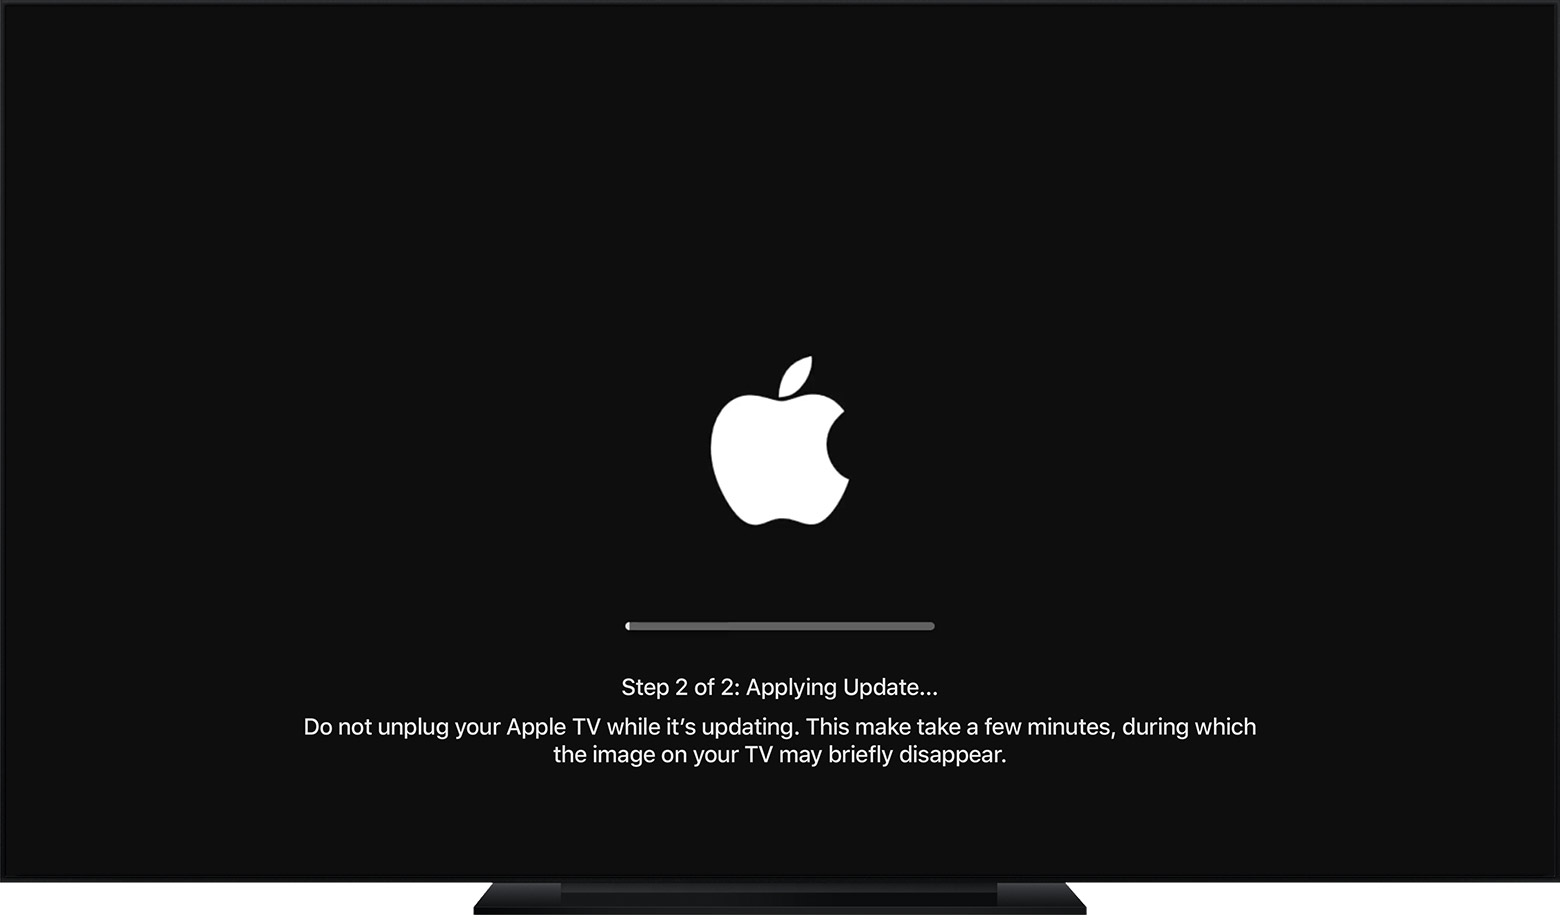 tvOs showing Step 2 of 2 of the update: Applying Update.